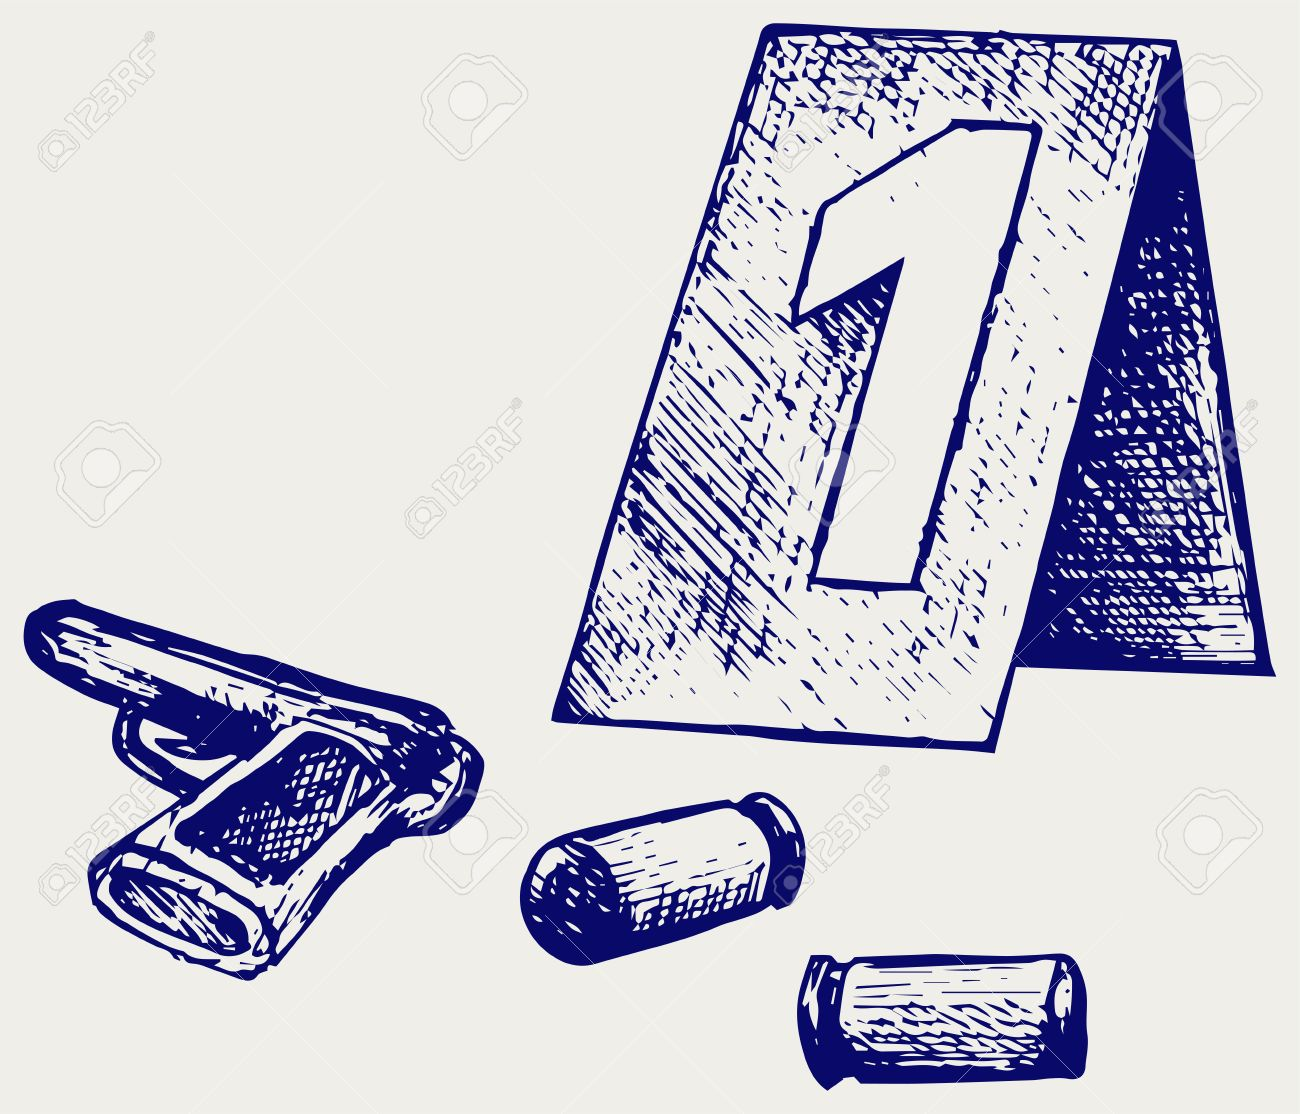 Forensics clipart 5 » Clipart Station.